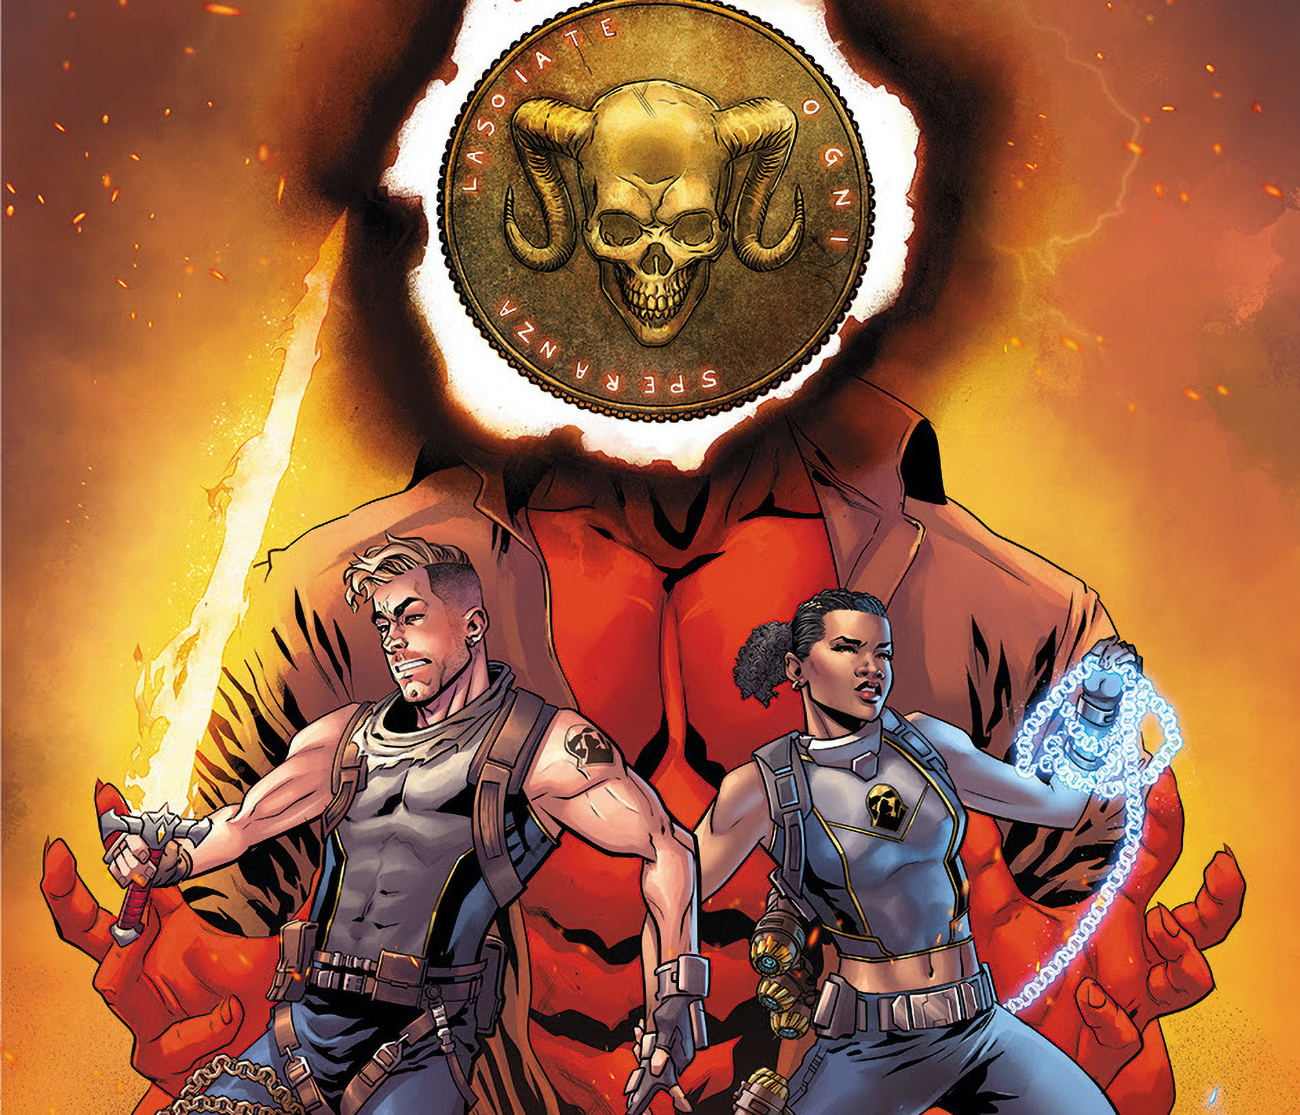 Image Comics launching new series 'Hell to Pay' live via Twitch